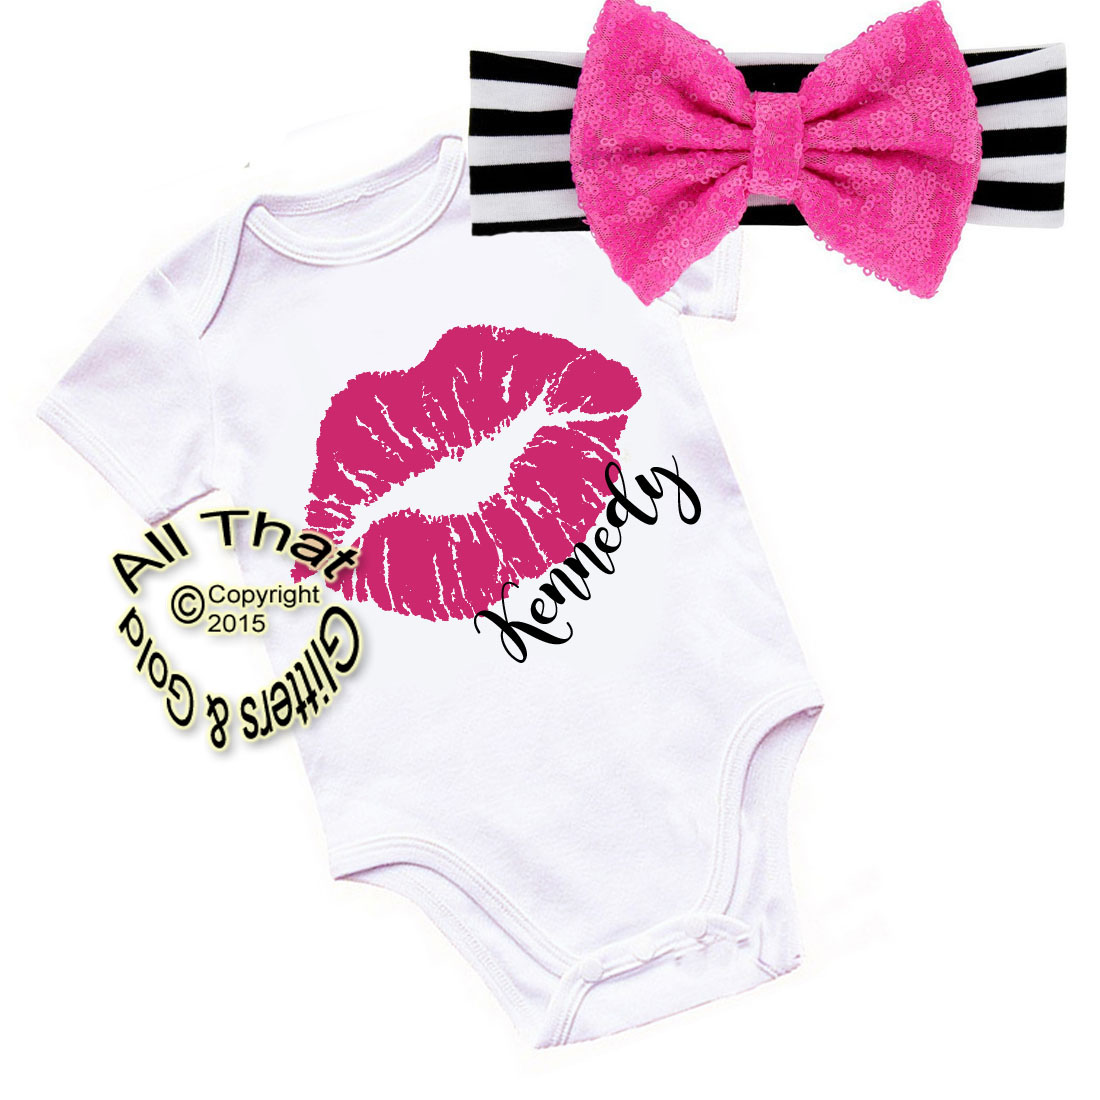 ab250246bfb12 Personalized Lips Baby Toddler Little Girls Glitter Outfits Clothing Sets